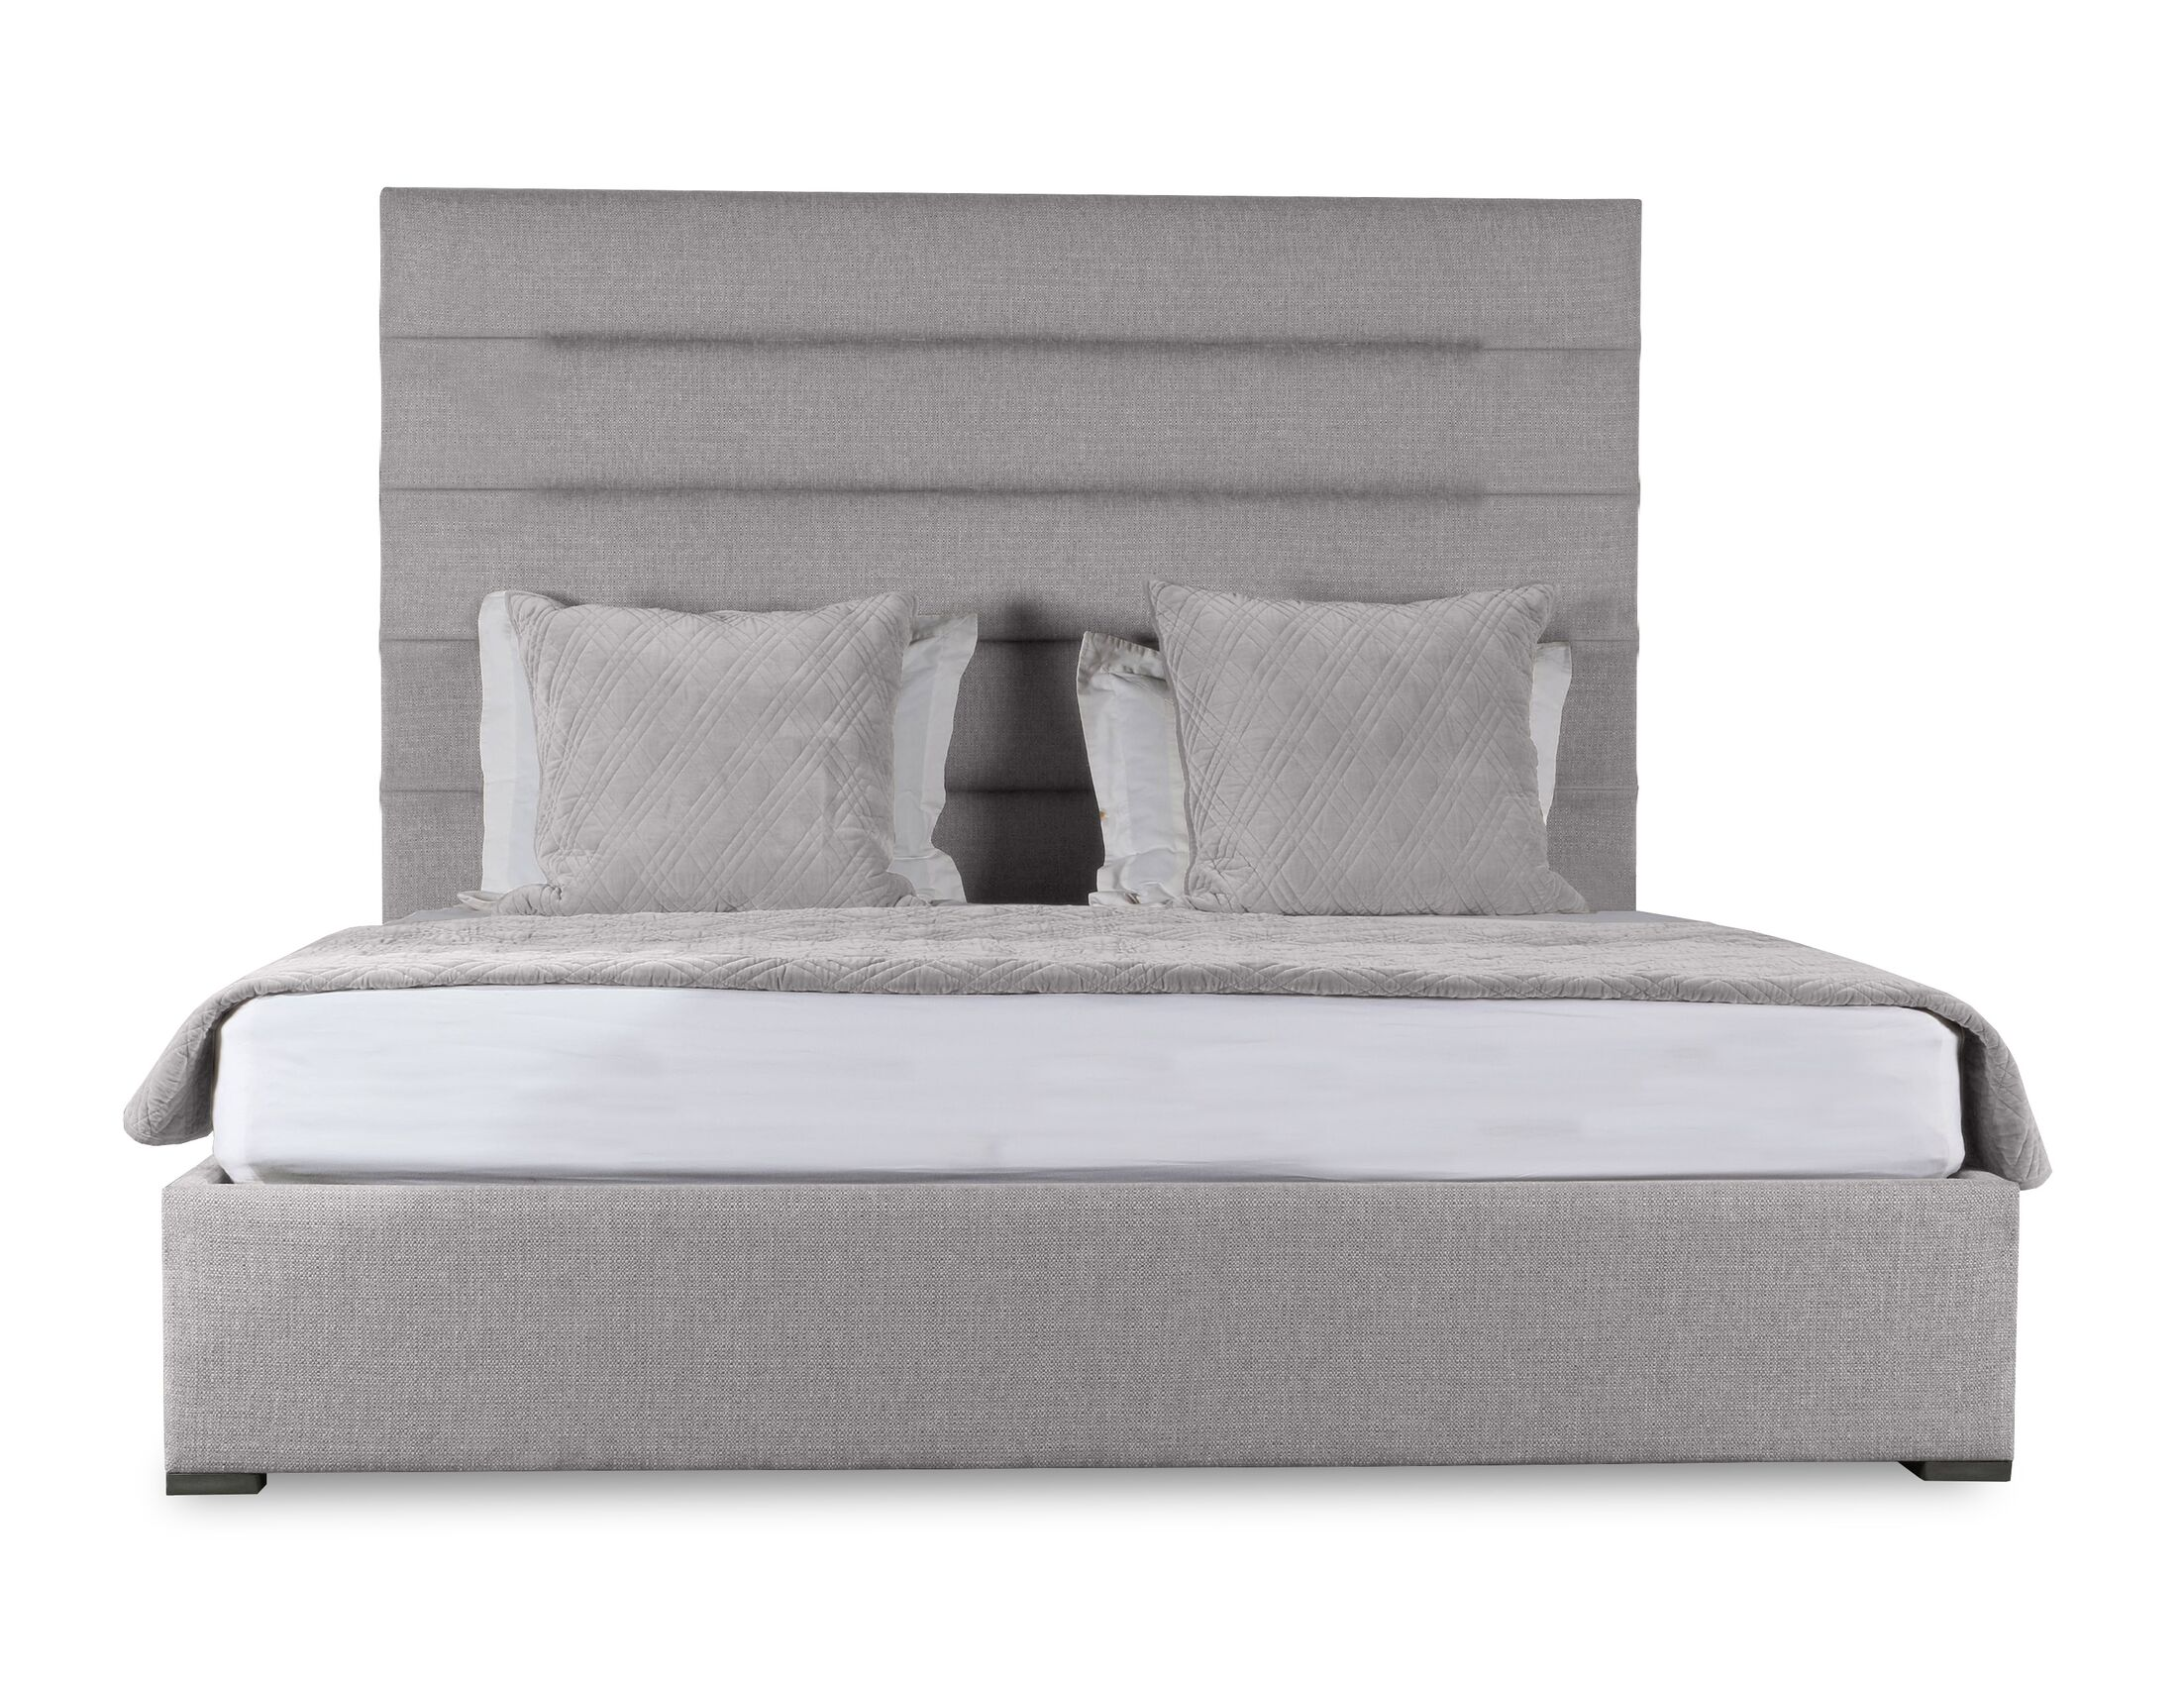 Handley Upholstered Panel Bed Color: Gray, Size: High Height King